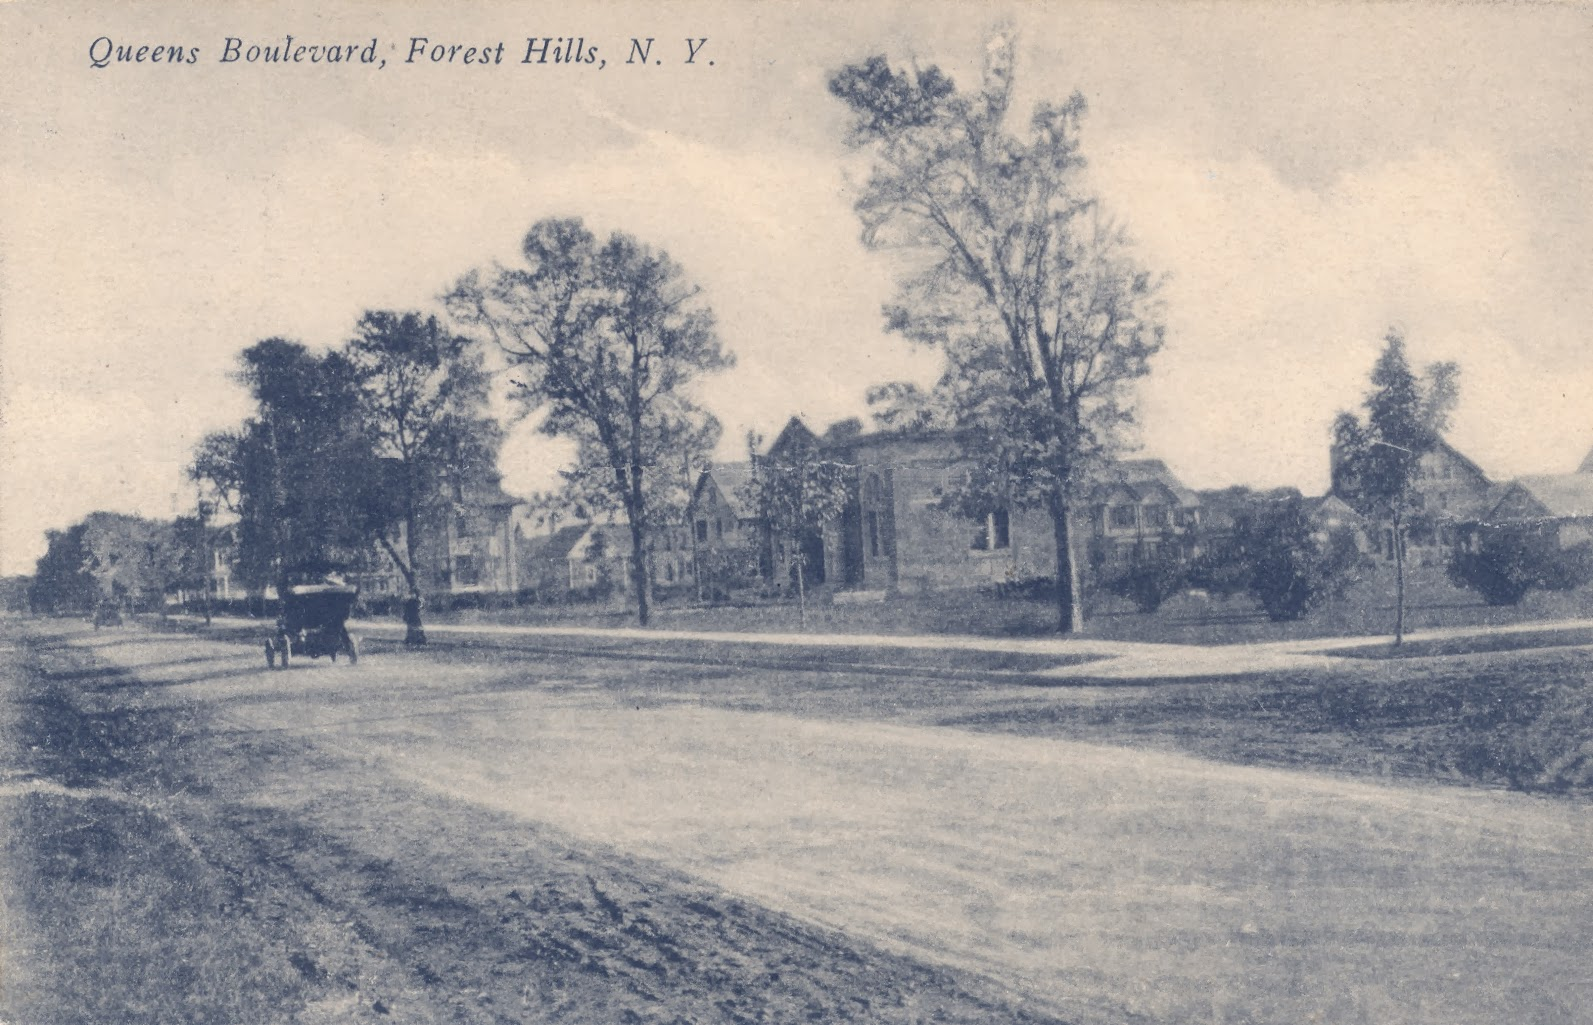 History of Forest Hills, Queens